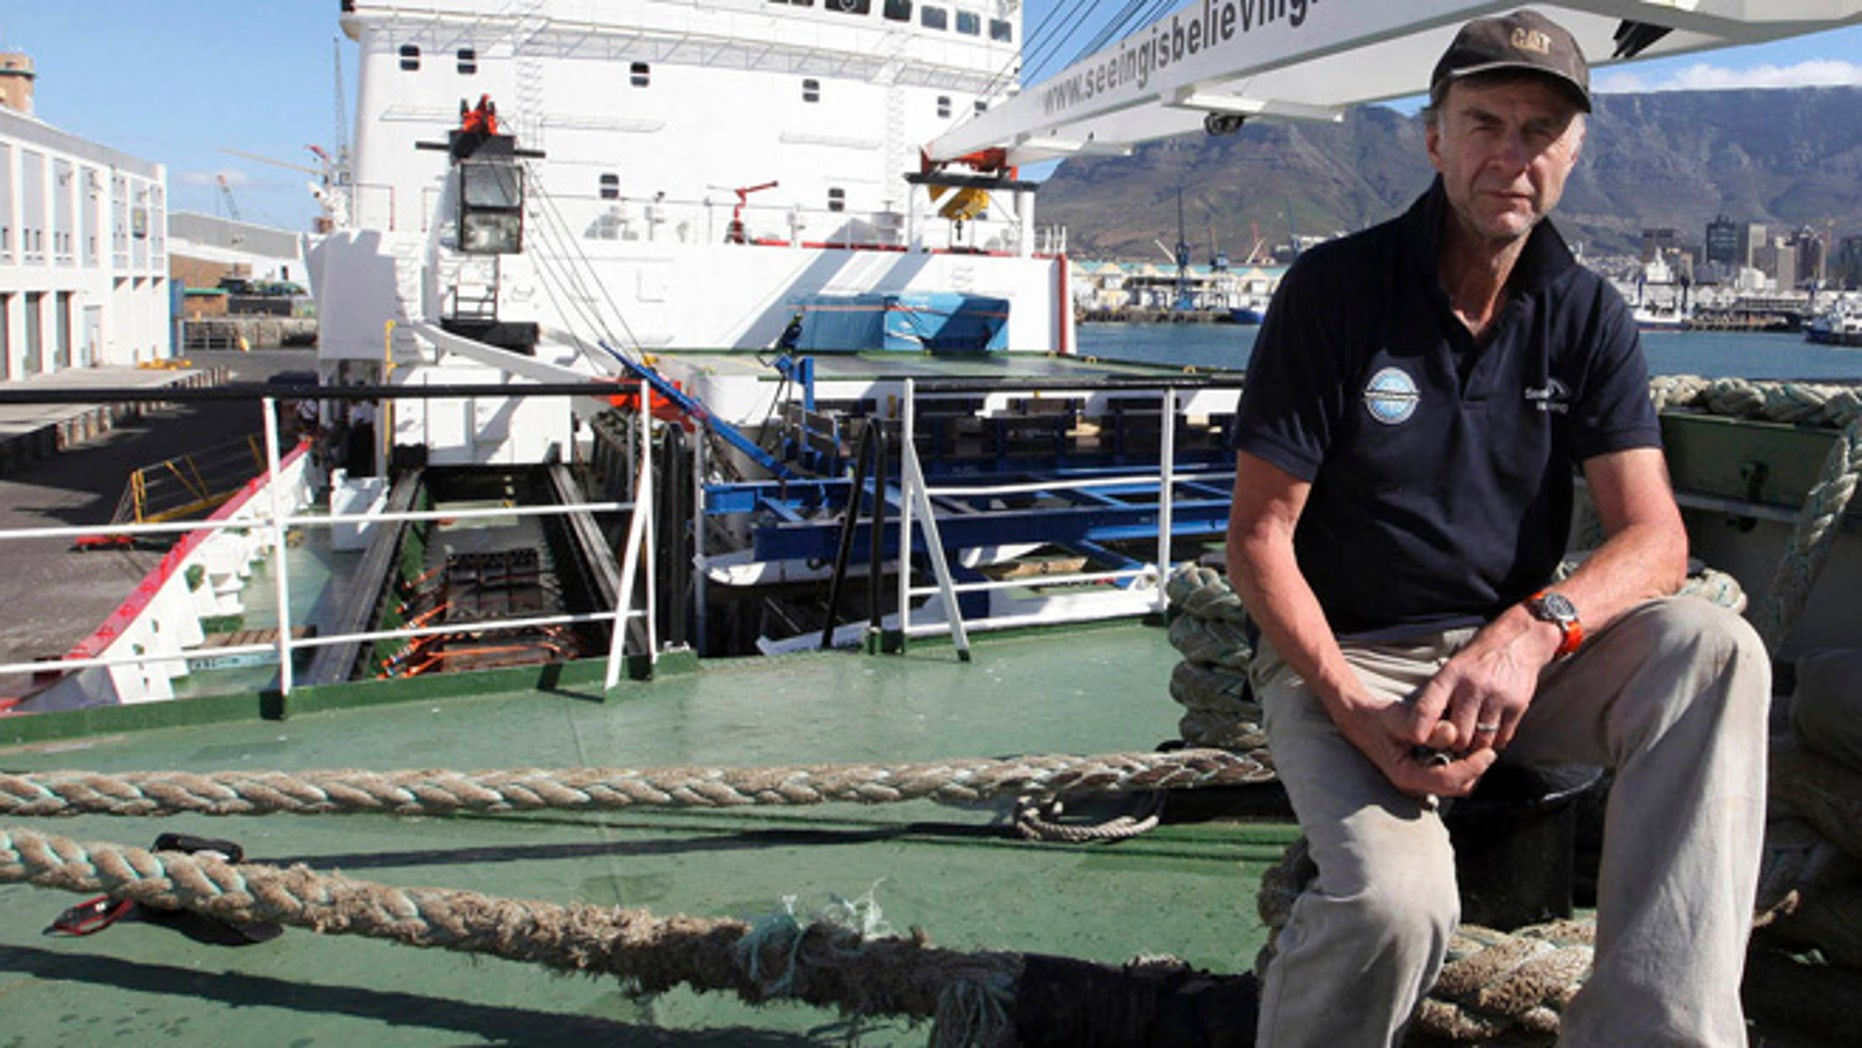 Jan. 3, 2013: British explorer Ranulph Fiennes on board the polar vessel S.A. Agulhas in Cape Town, South Africa.